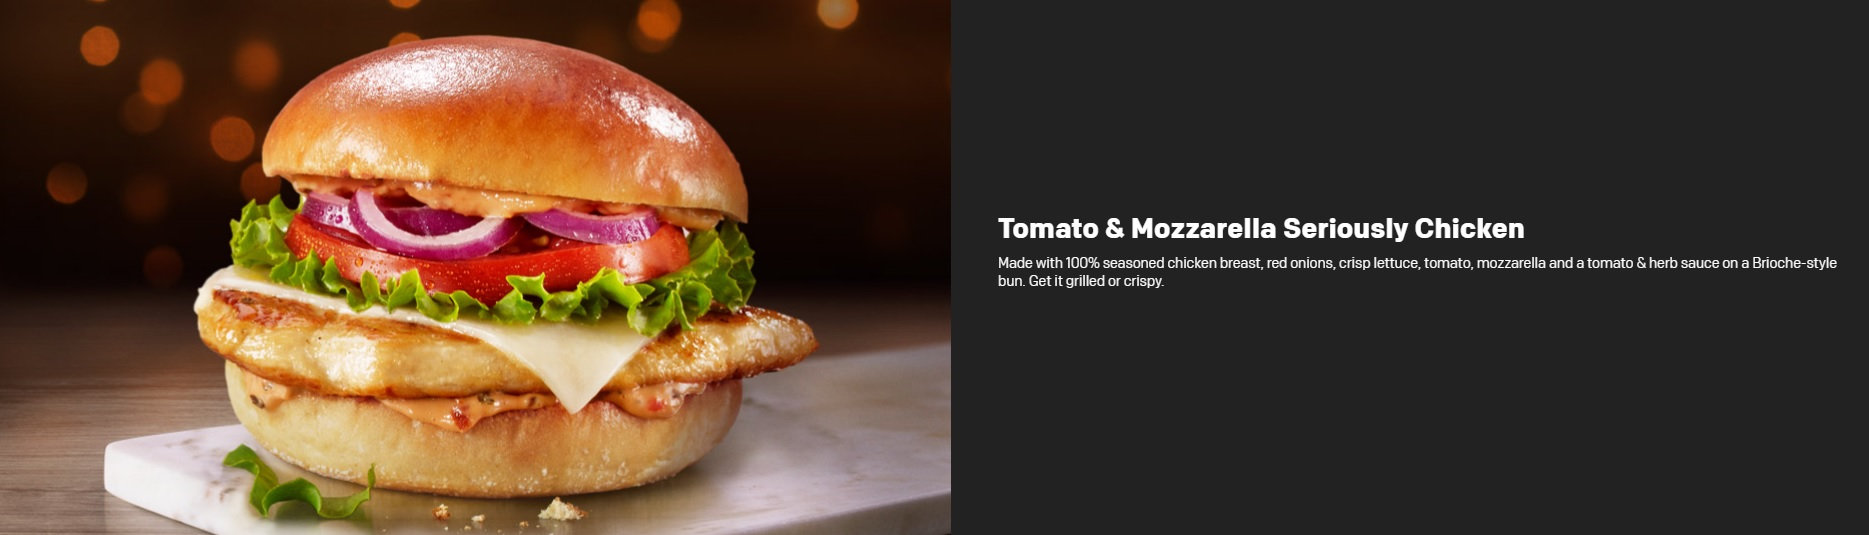 McDonald's Seriously Festive Menu - Tomato & Mozzarella Seriously Chicken